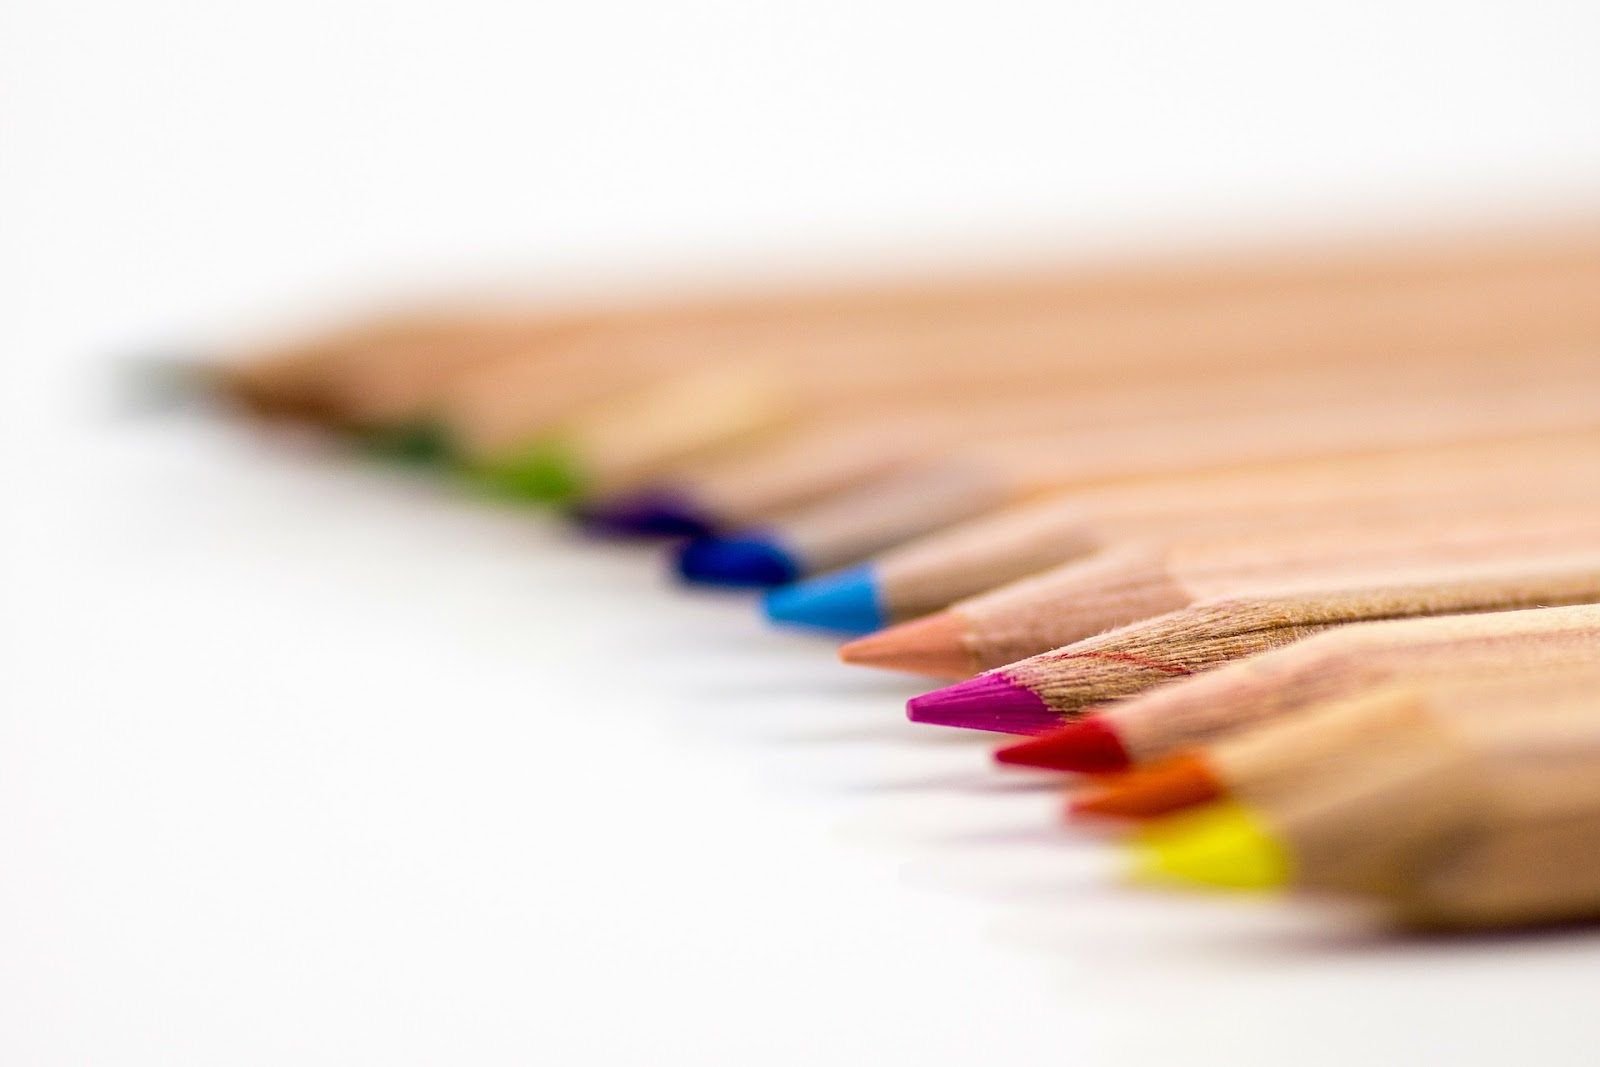 colored-pencils-168391_1920.jpg